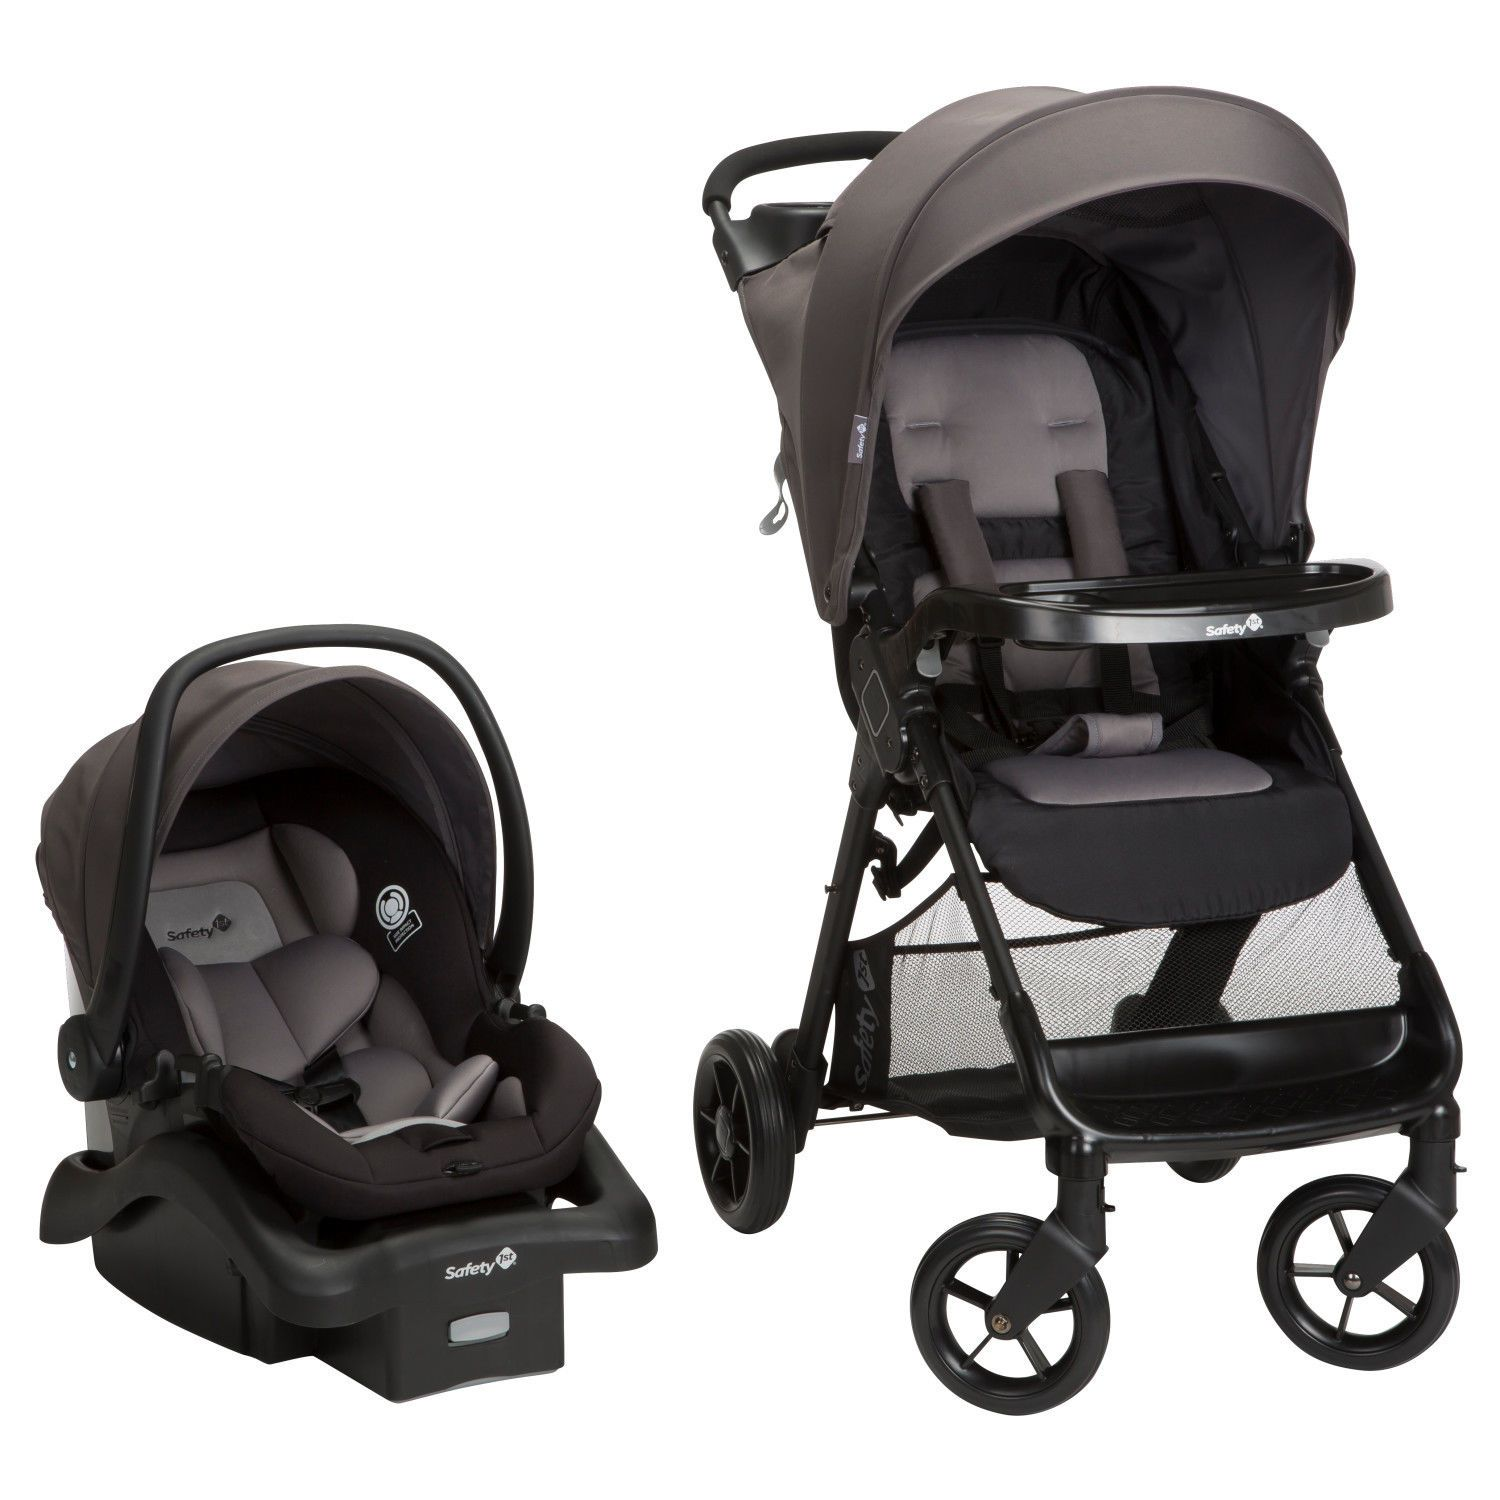 Umbrella Stroller First Years Details About Safety 1st Smooth Ride Travel System With